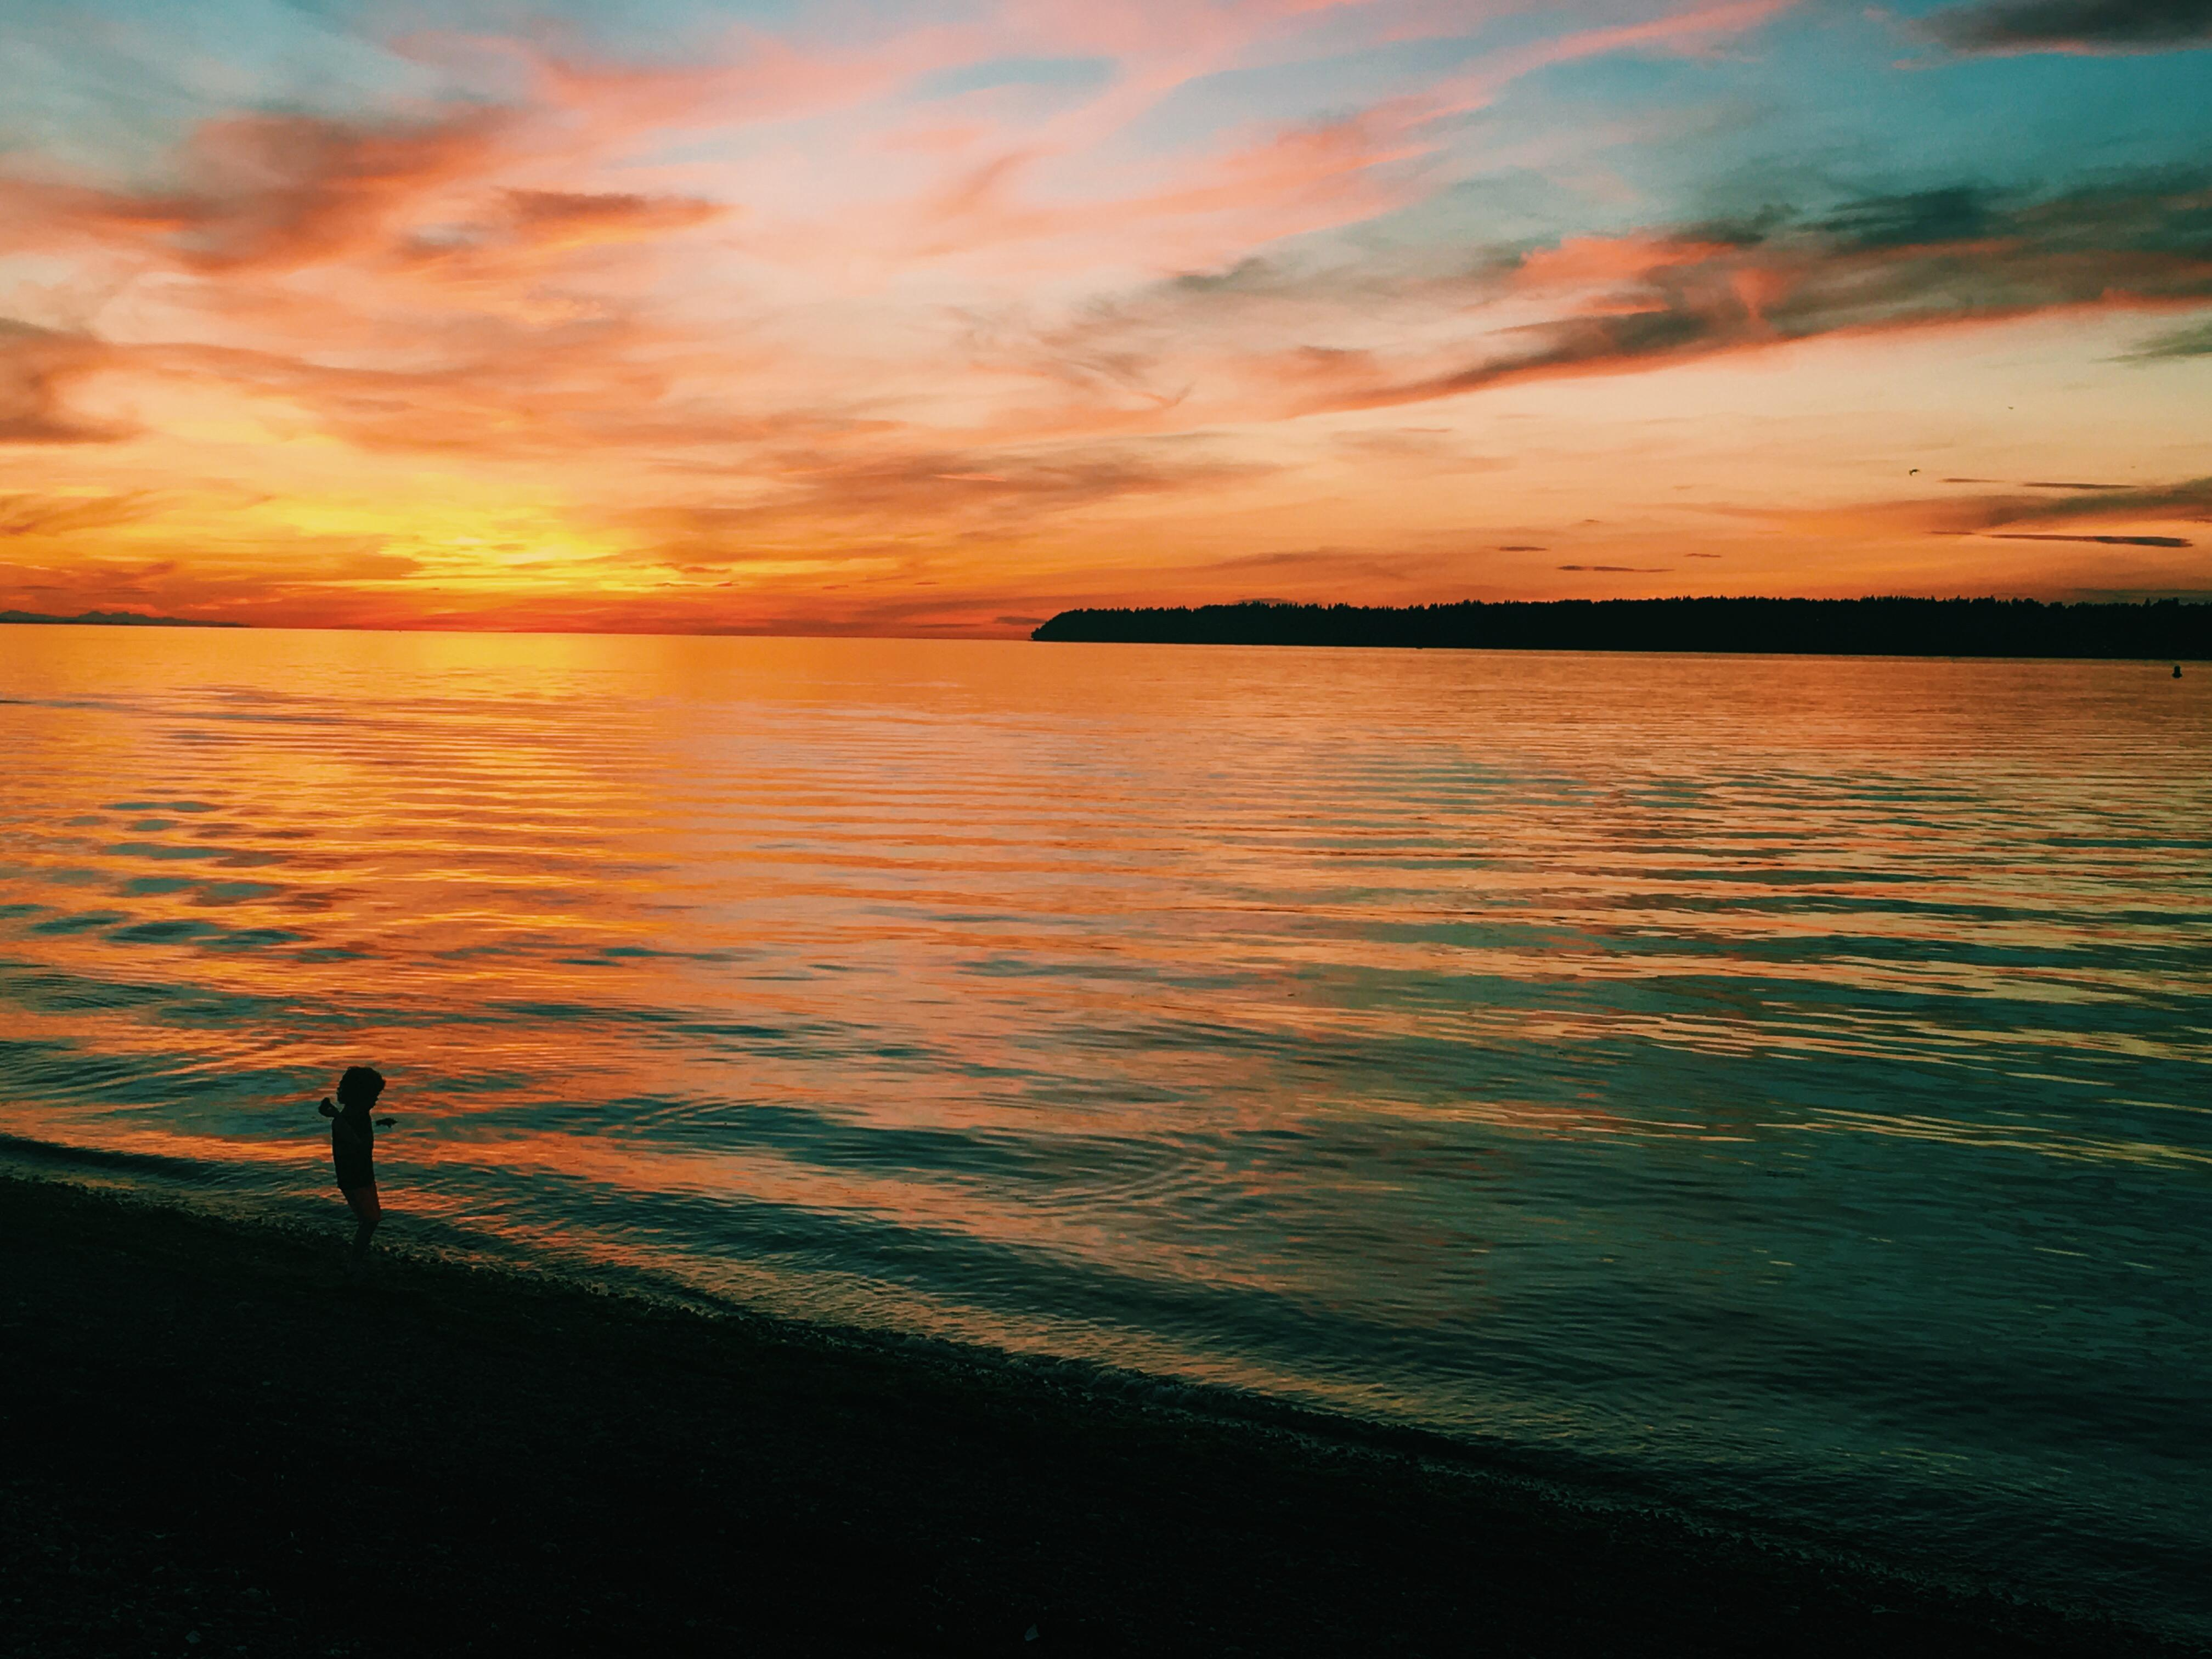 When the day comes to an end, one of Semiahmoo's most magical experiences begins. Take a stroll along the beach, or watch from the comfort of your room, as the most brilliant sunsets light up the sky. <p></p>